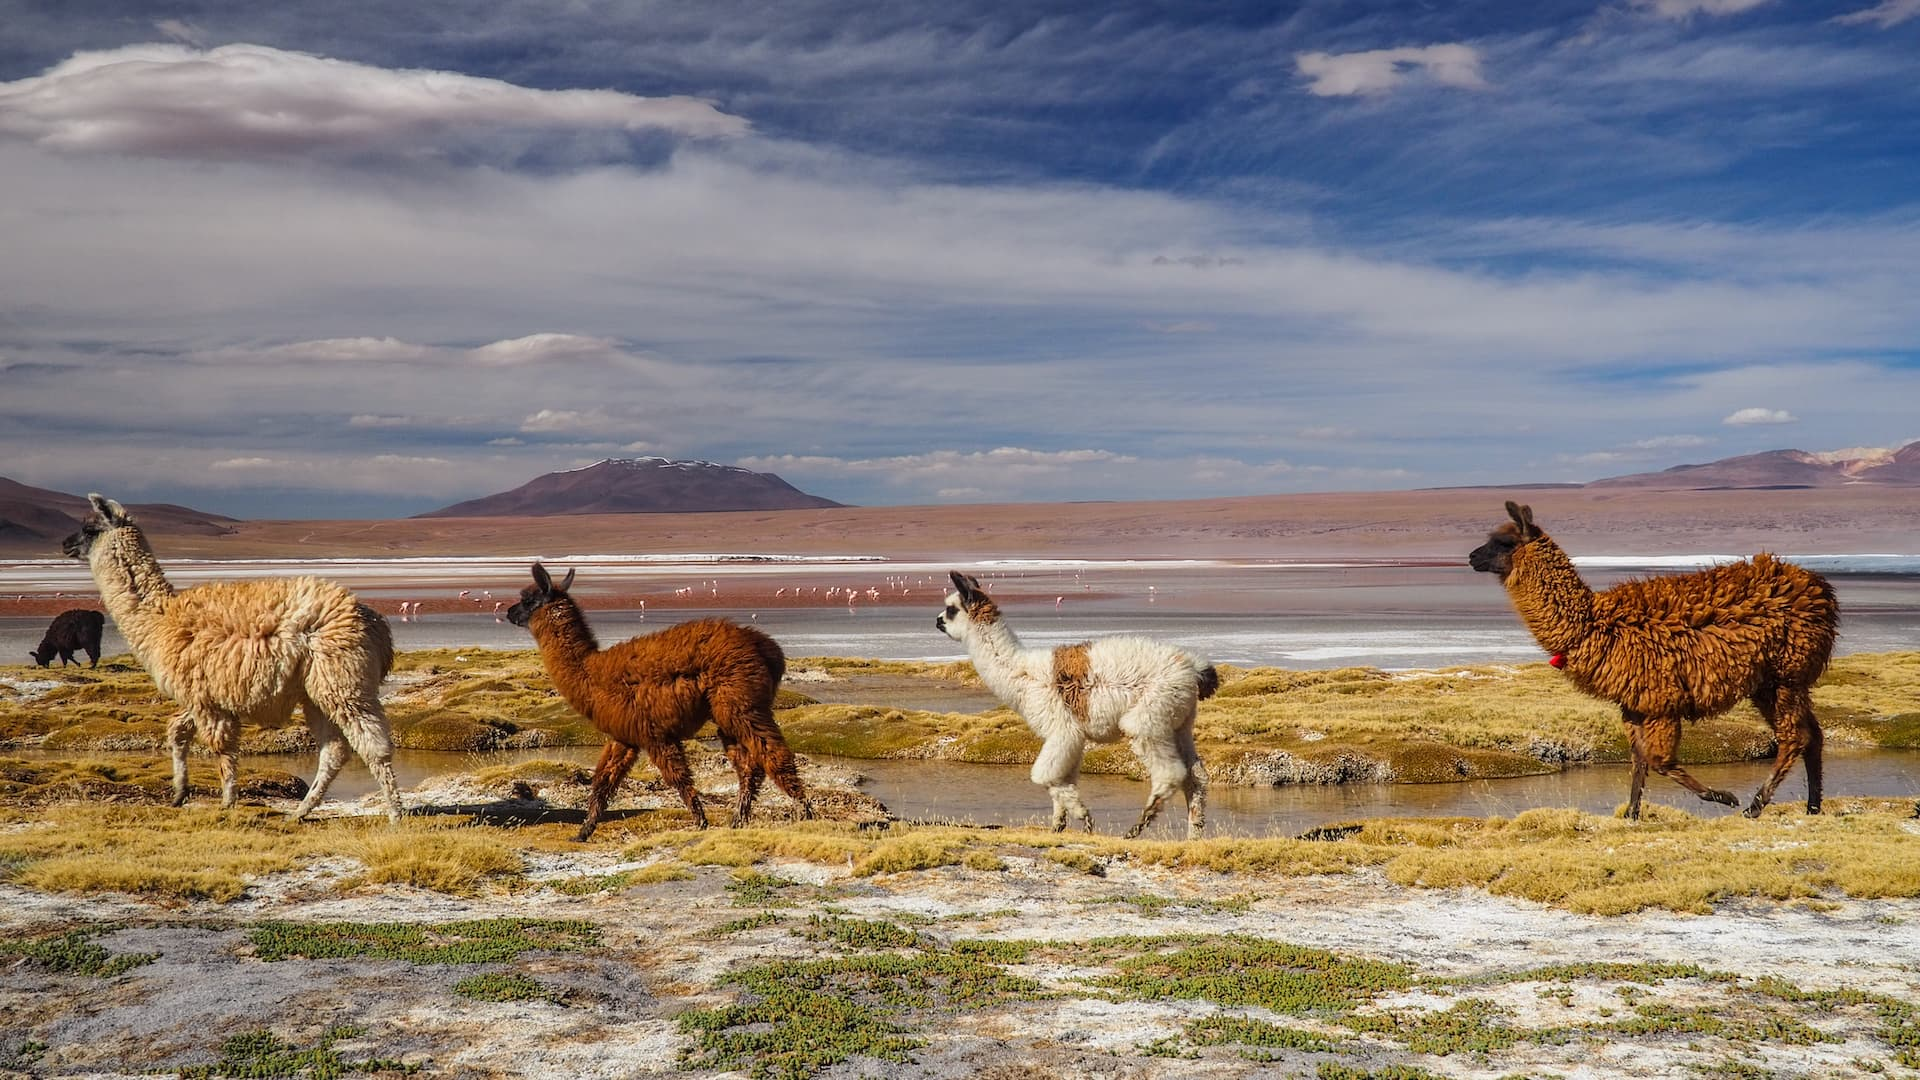 Four llamas walking in line from right to left with a pink lake and plateau-shaped mountain in the background